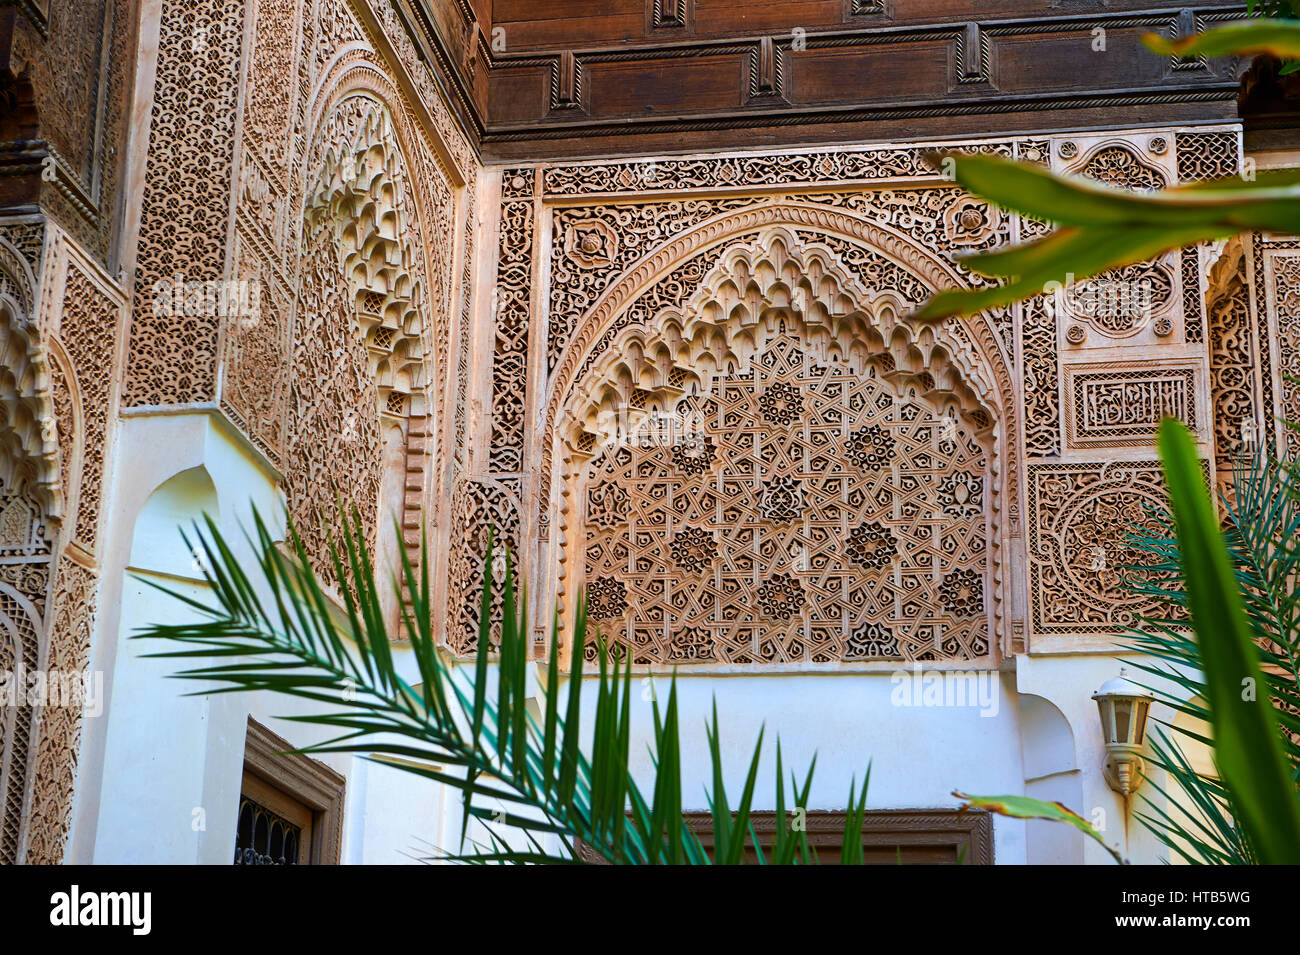 Berber arabesque Mocarabe and Muqarnas plasterwork.The Petite Court, Bahia Palace, Marrakesh, Morroco - Stock Image